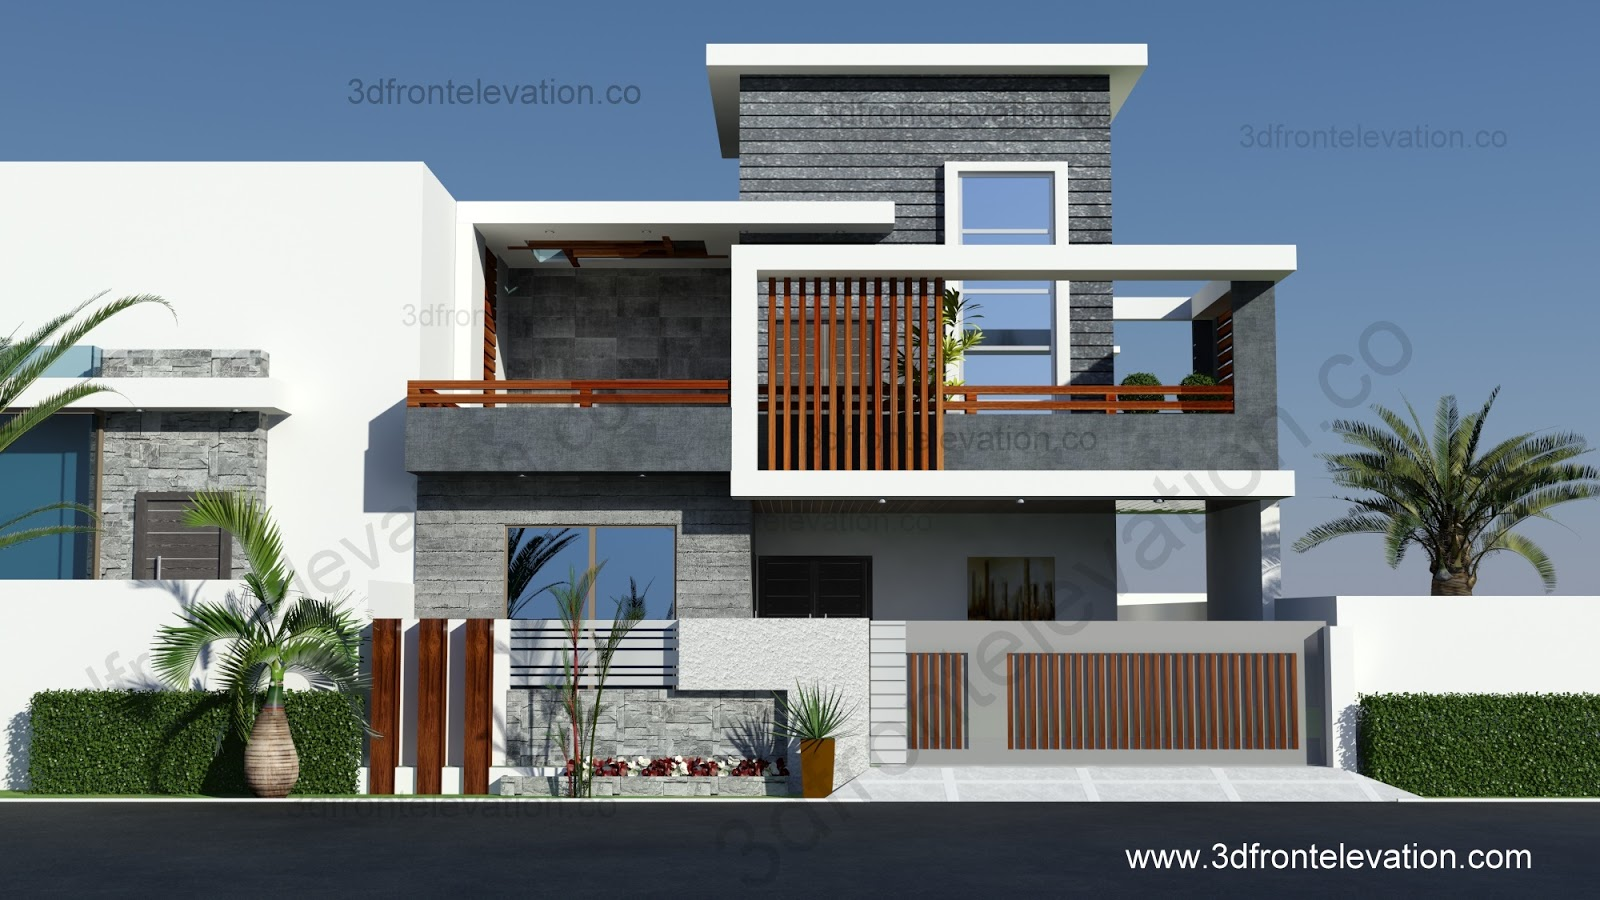 10 marla house plan for Home design ideas 3d